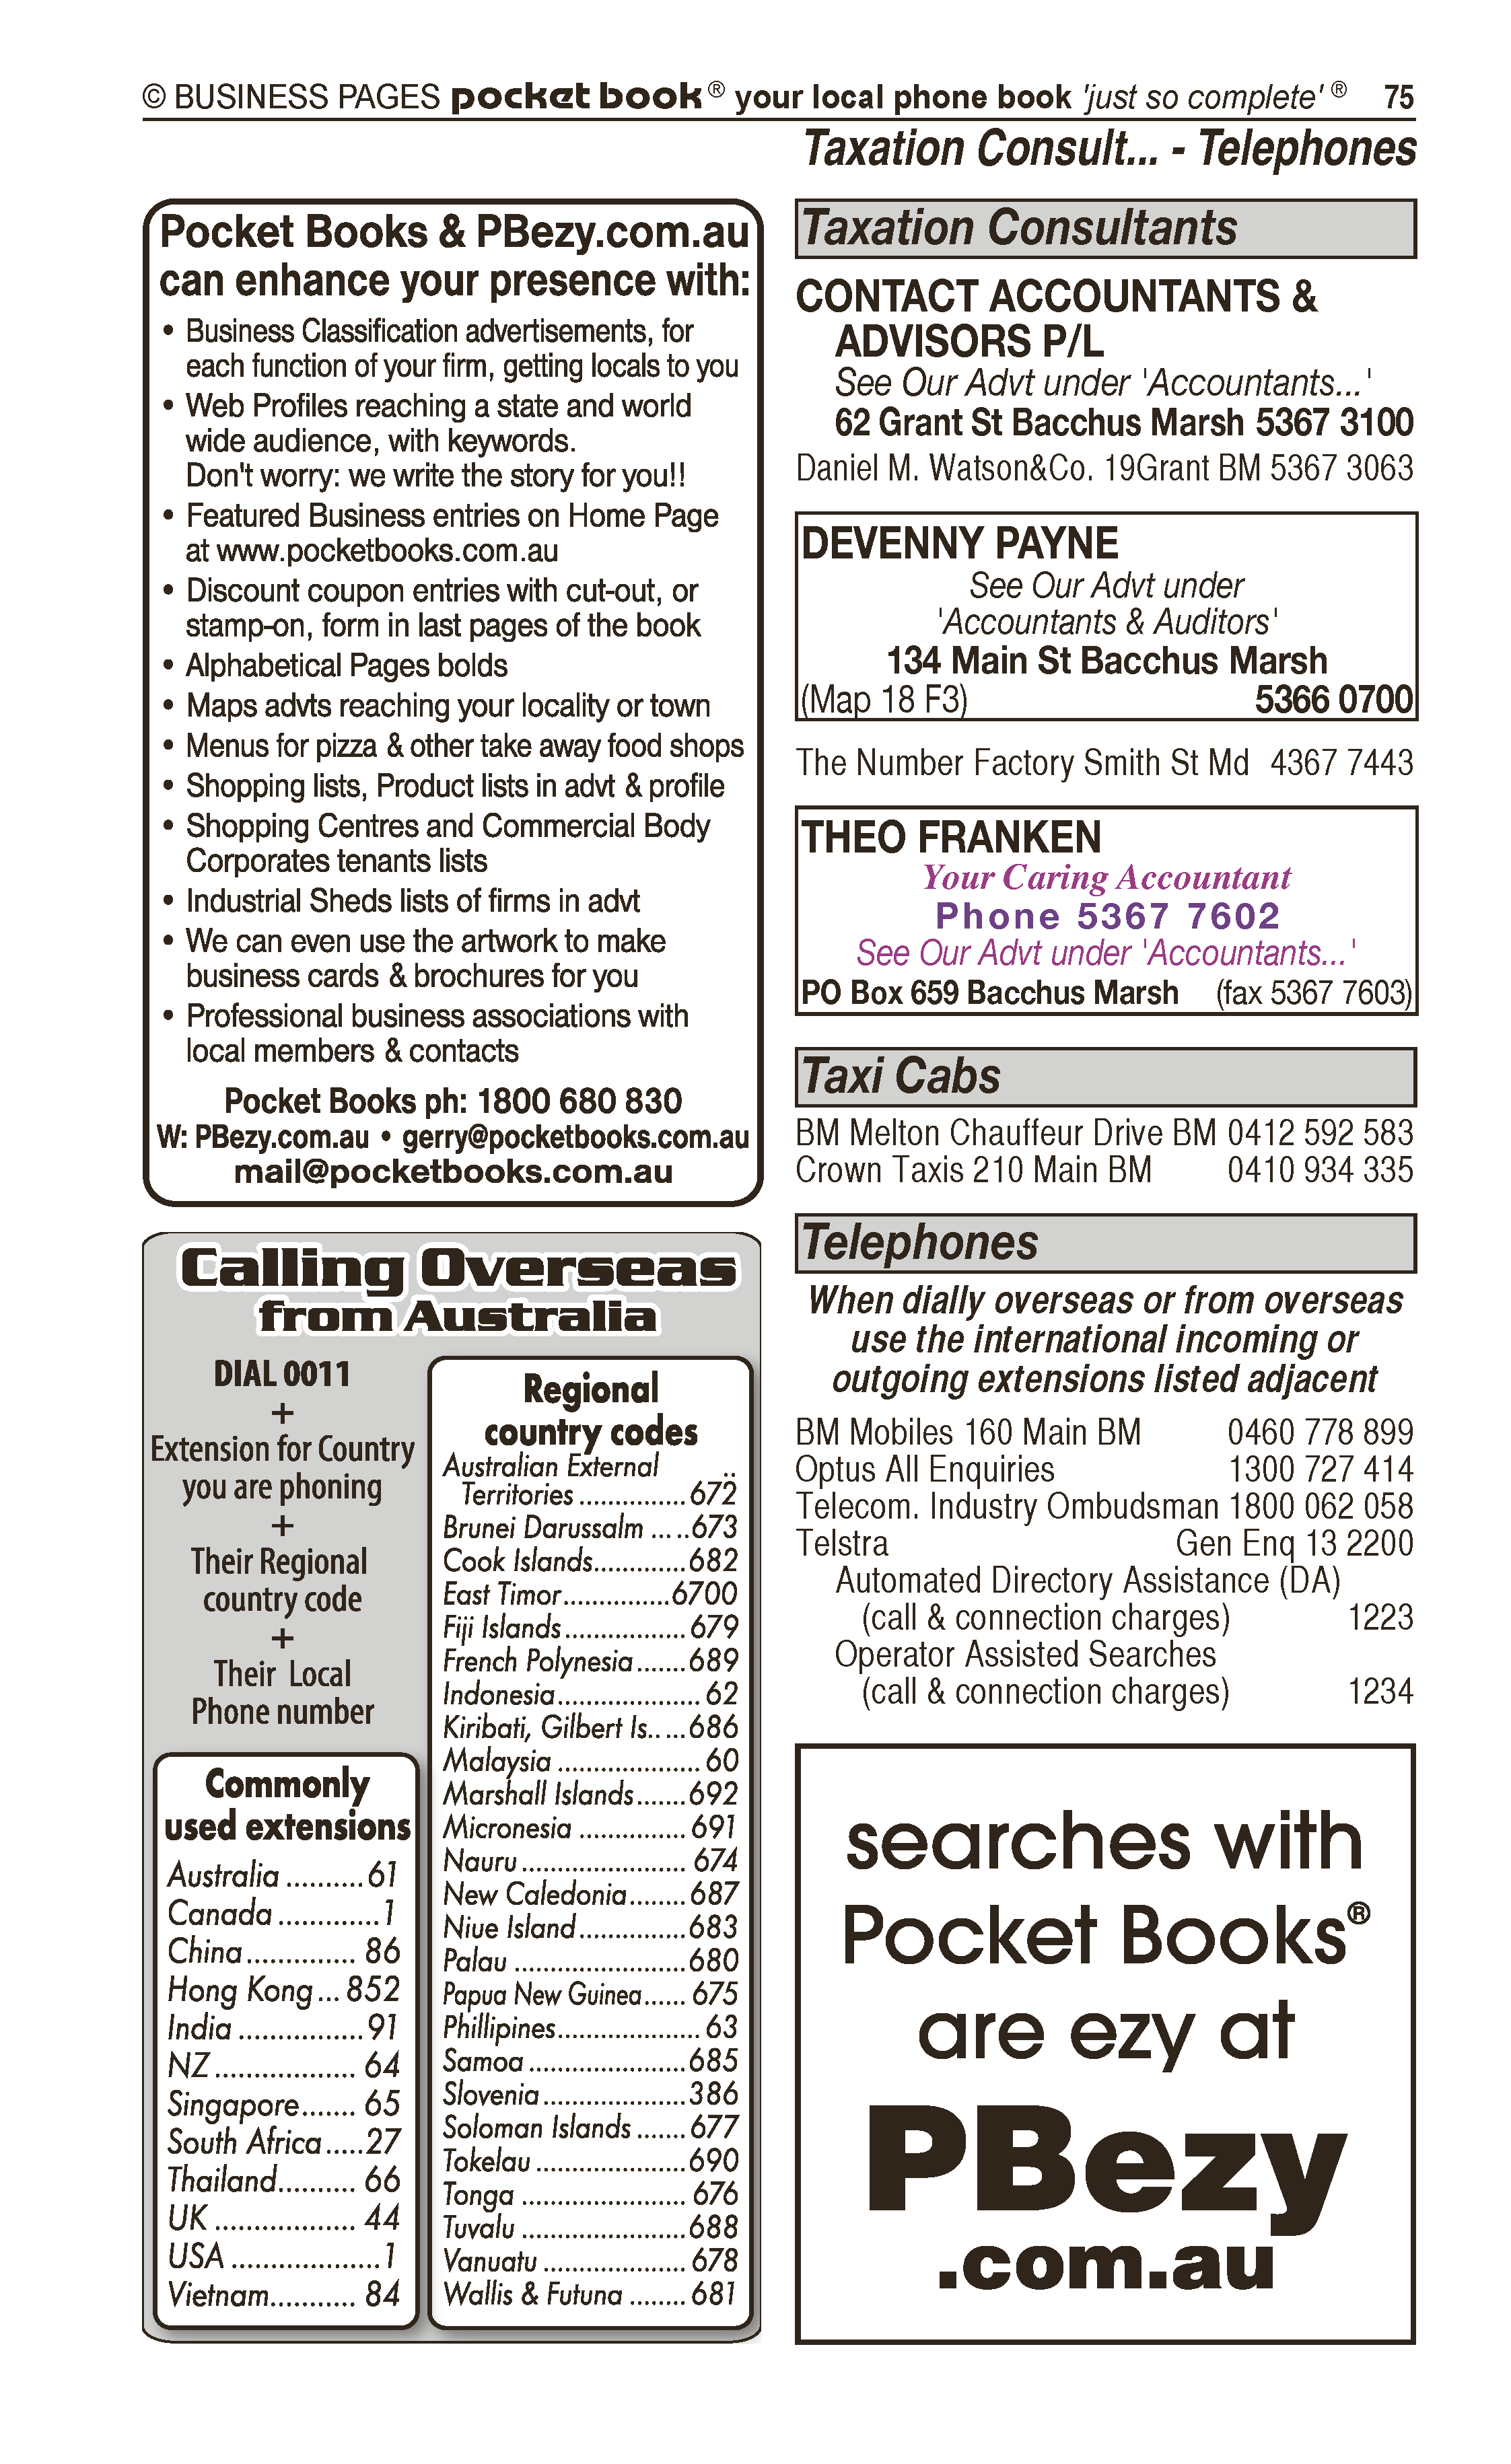 H & K Auto Electrical & Mechanical Pty Ltd in Maddingley VIC - page 75